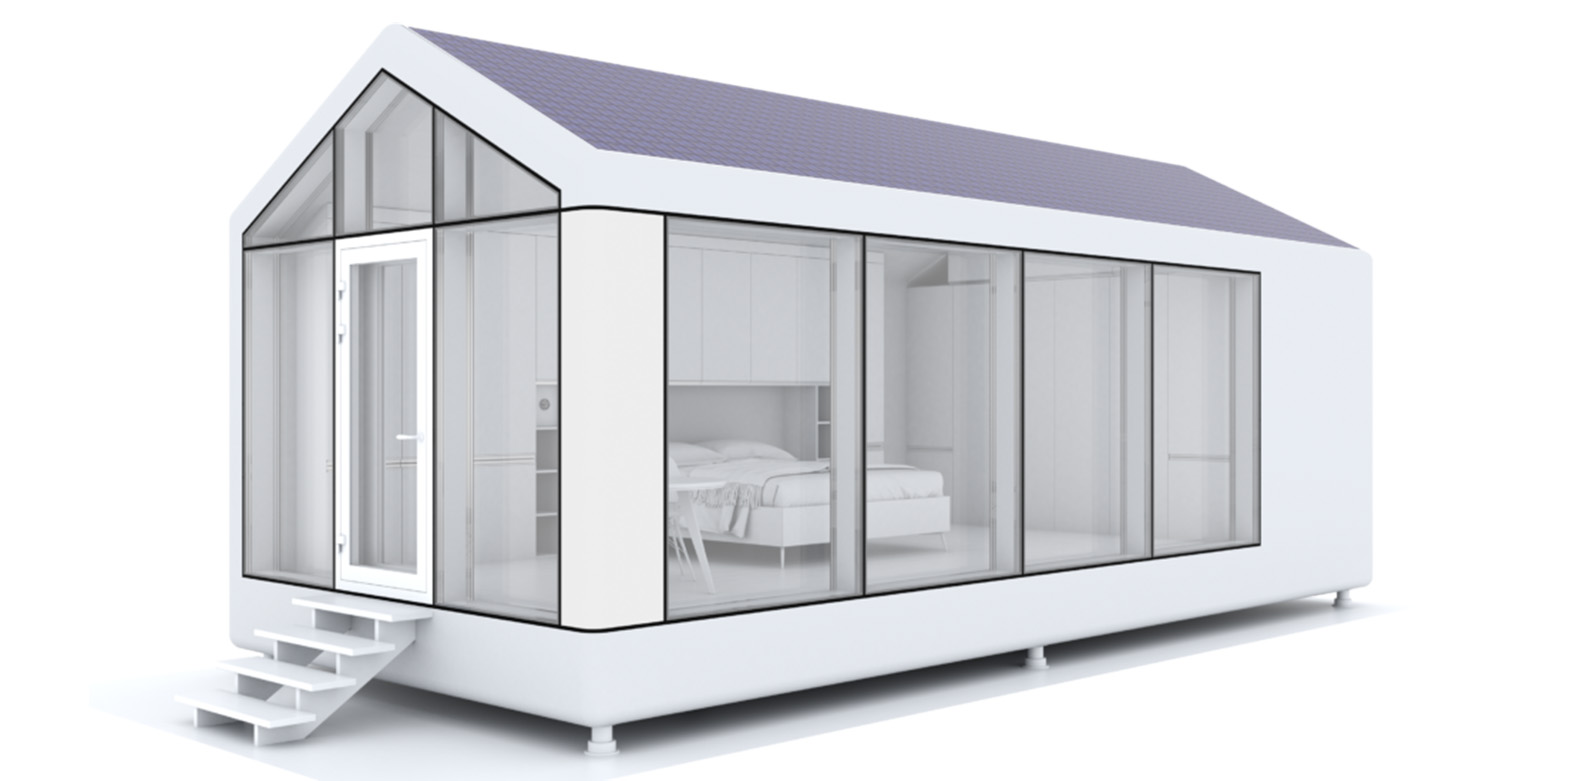 These 3d Printed Off Grid Tiny Houses Can Withstand